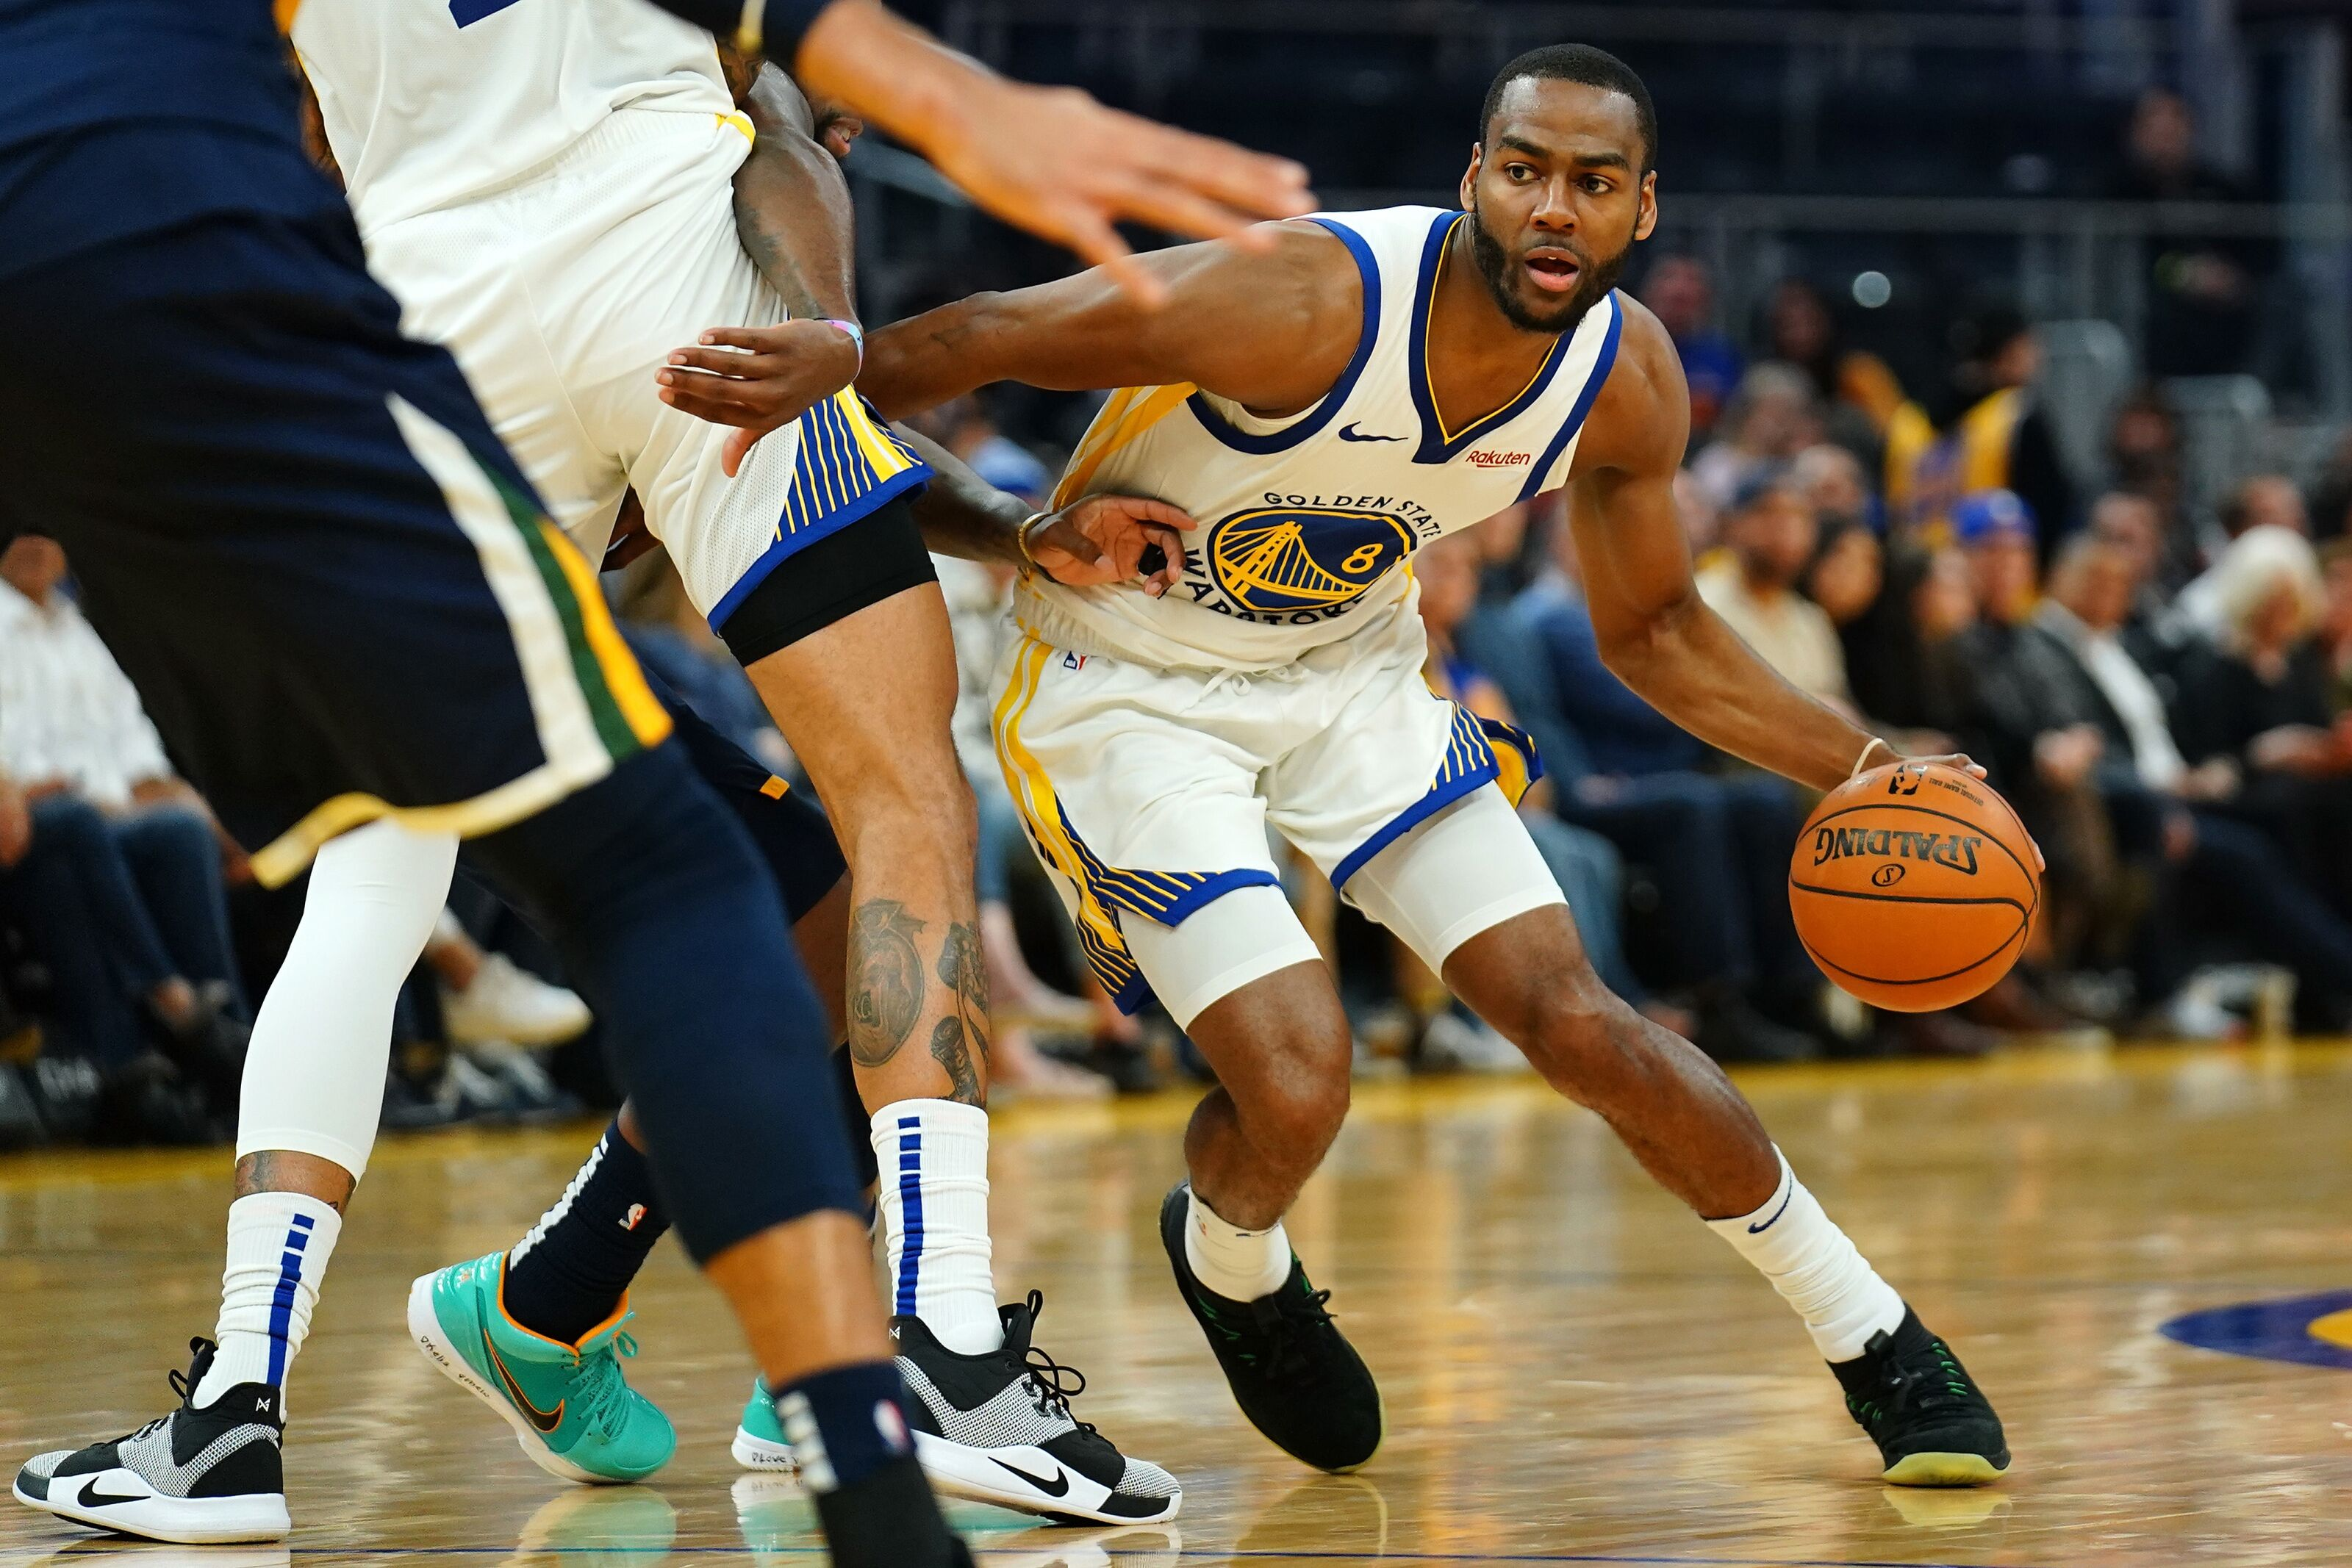 The Golden State Warriors need to consider keeping Alec Burks long-term